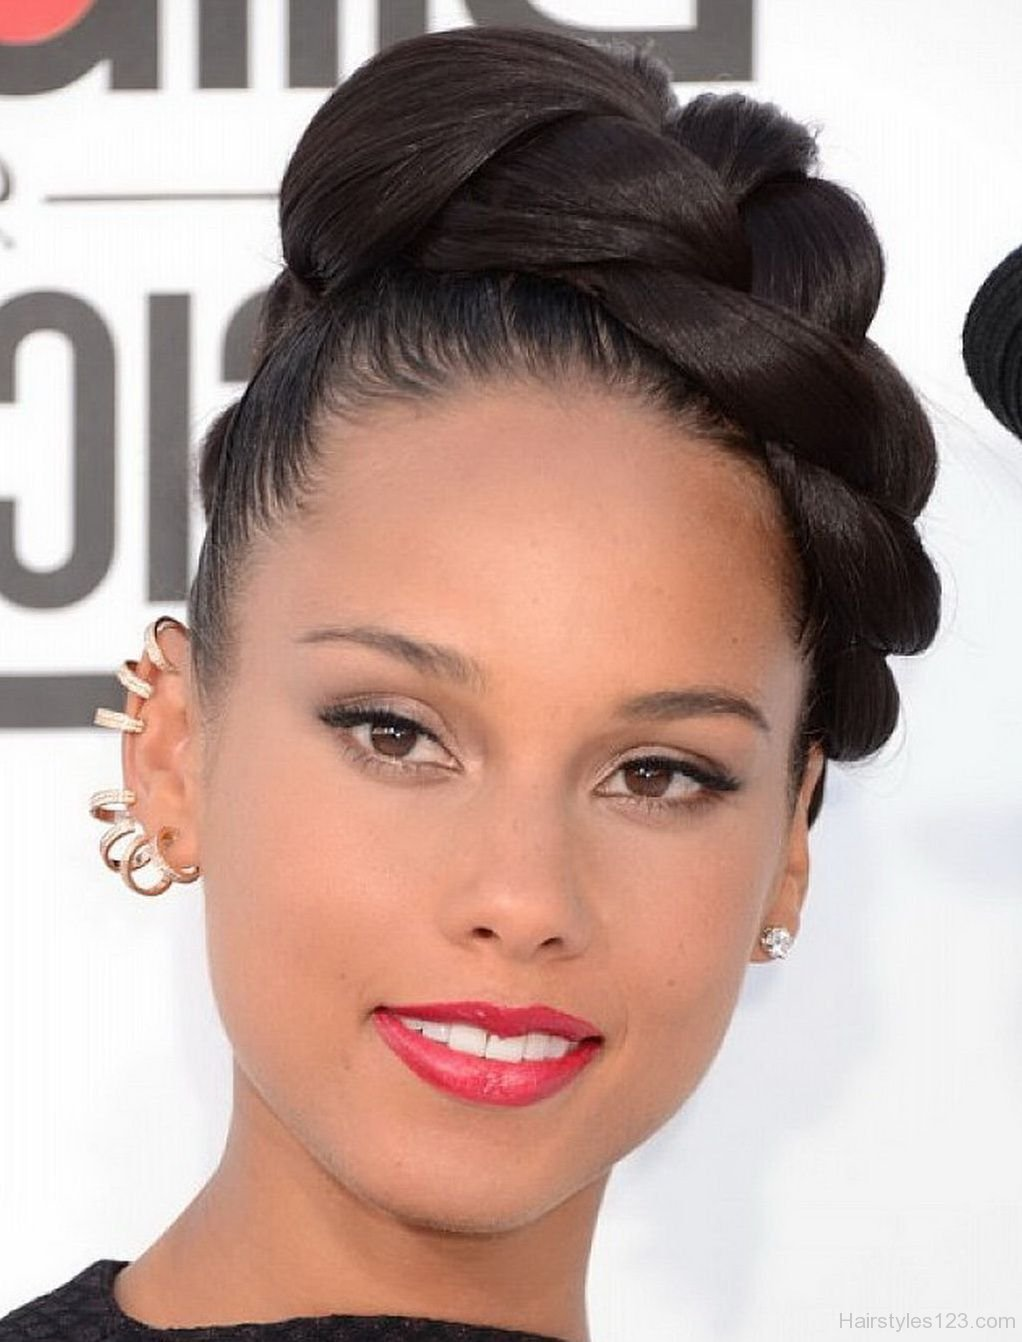 The Best Black Hairstyles Page 5 Pictures